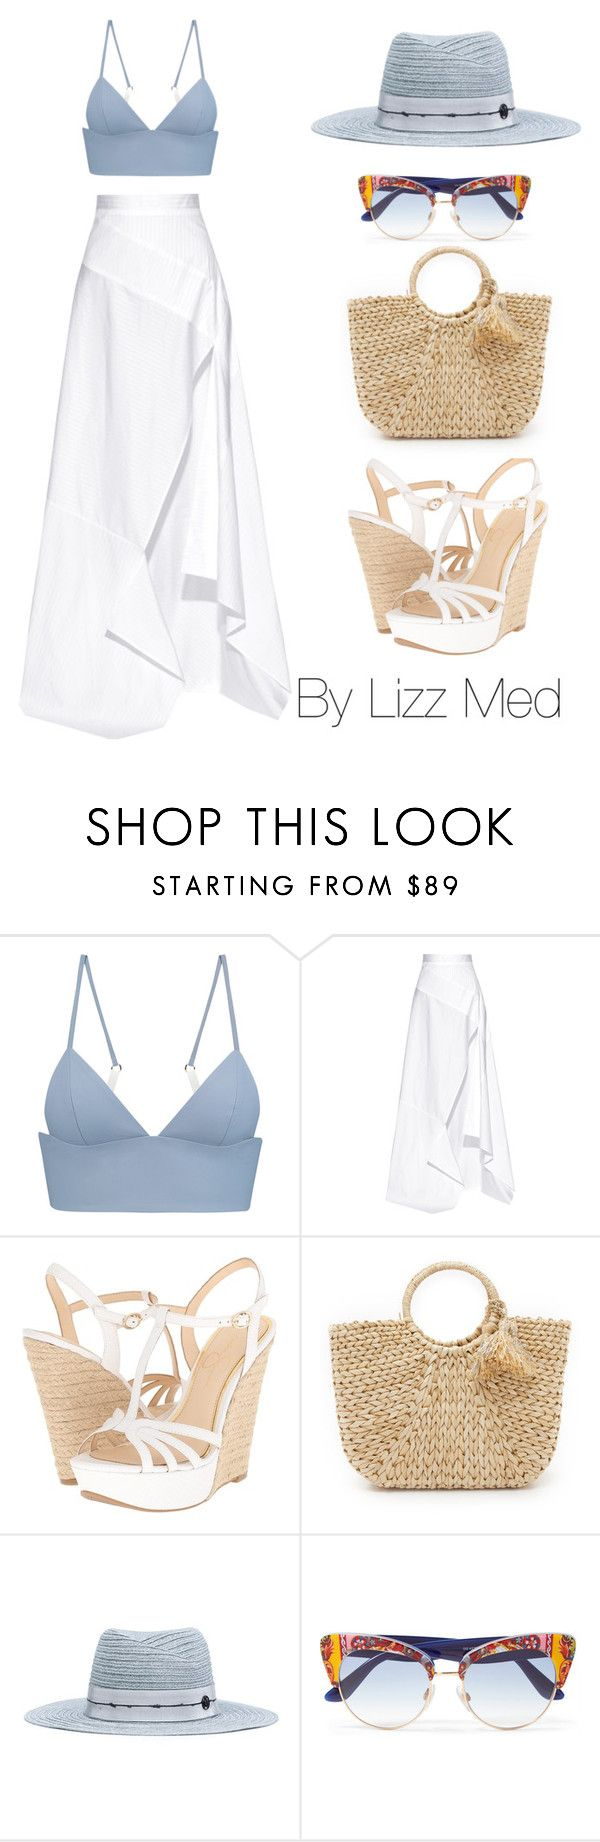 """""""Beach vibe"""" by lizz-med ❤ liked on Polyvore featuring T By Alexander Wang, Michael Lo Sordo, Jessica Simpson, Hat Attack, Maison Margiela and Dolce&Gabbana"""